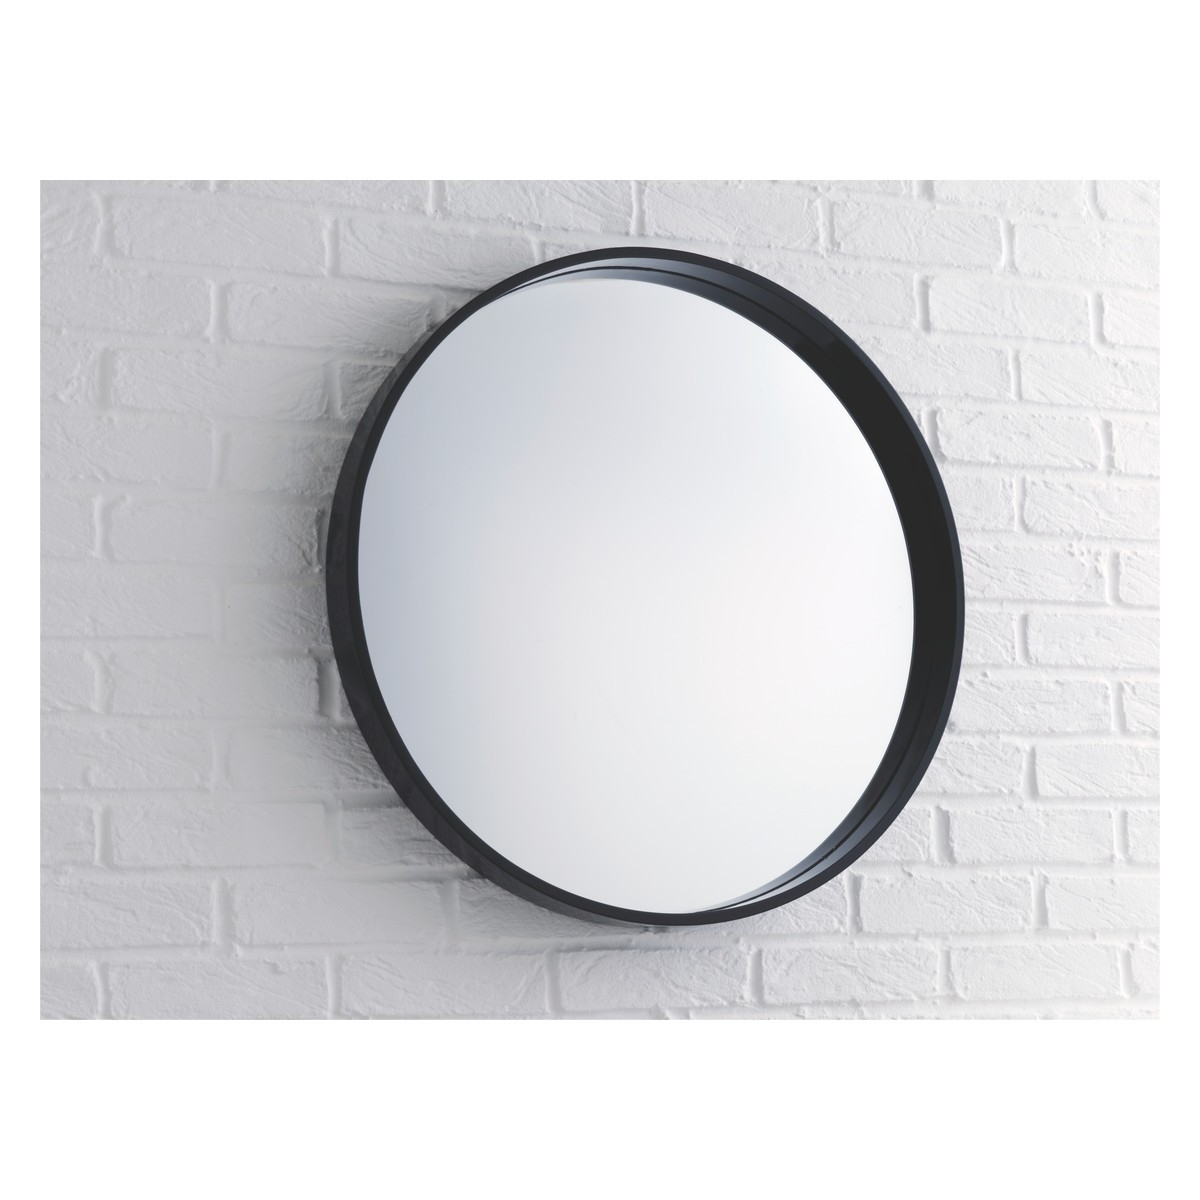 Aimee Black Round Wall Mirror D65cm Buy Now At Habitat Uk Intended For Black Round Mirror (Image 2 of 15)